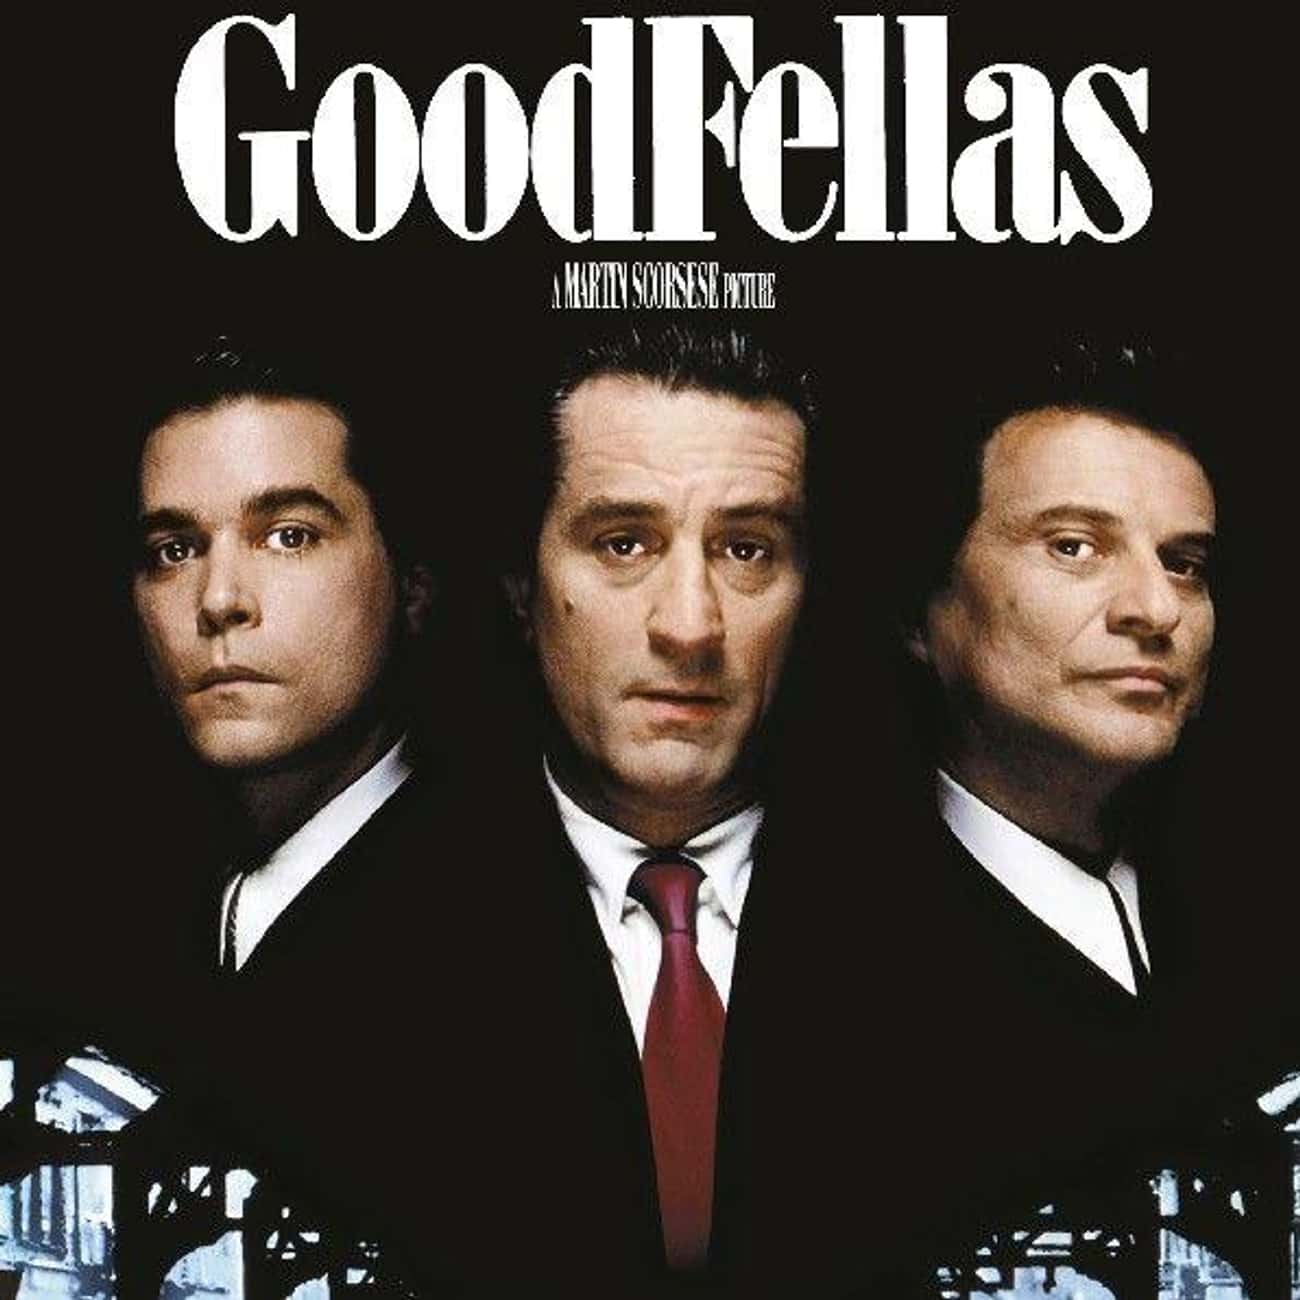 Goodfellas is listed (or ranked) 2 on the list The Best Shows & Movies About Gangsters & the Mafia